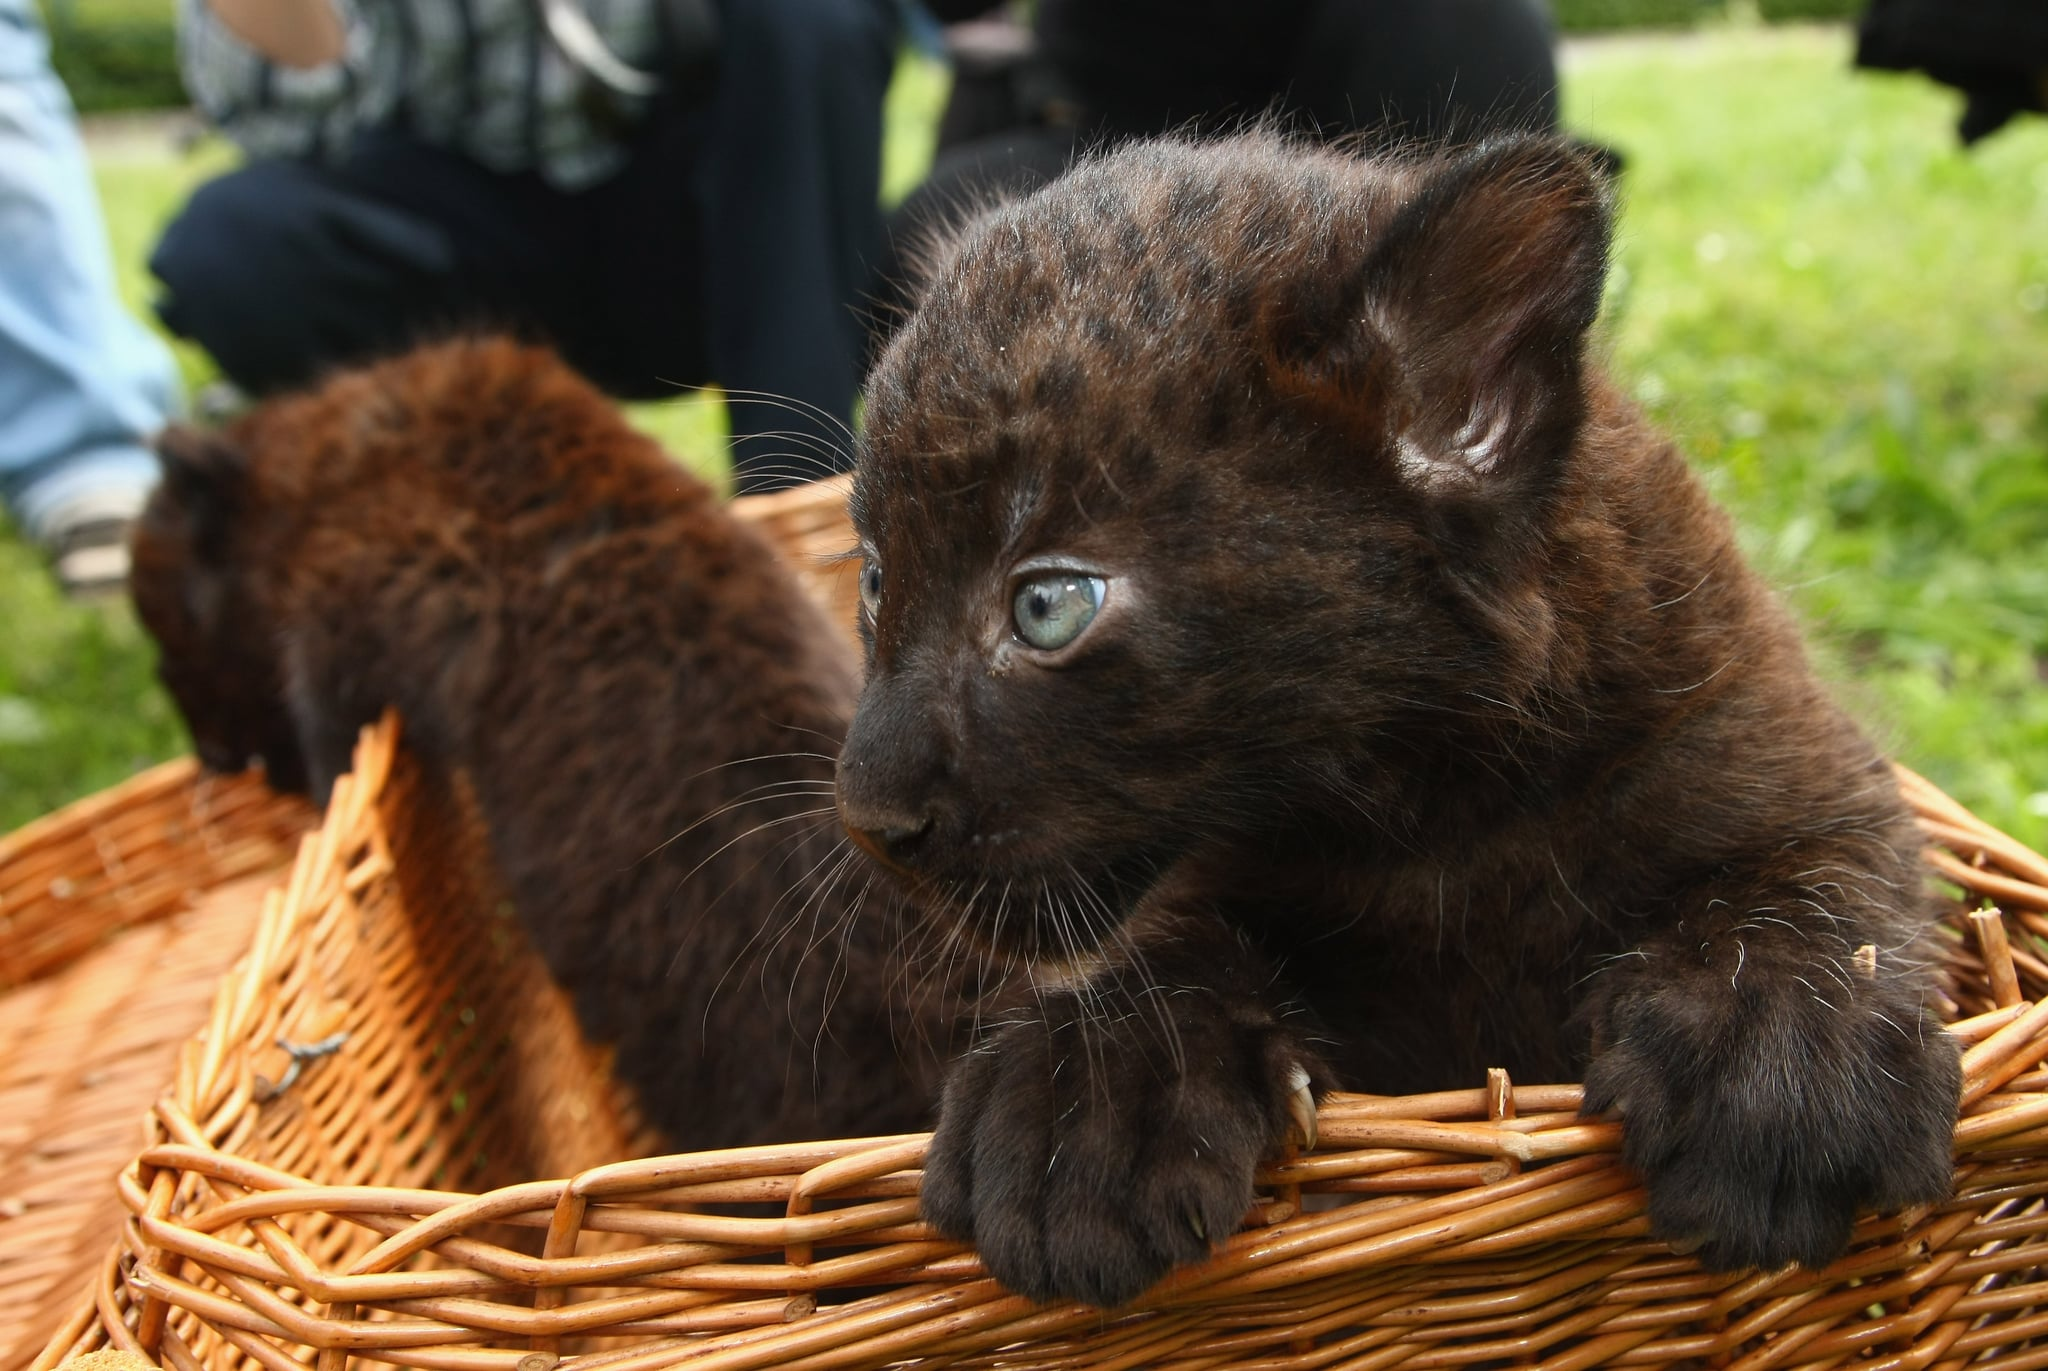 Baby panther cubs - photo#37